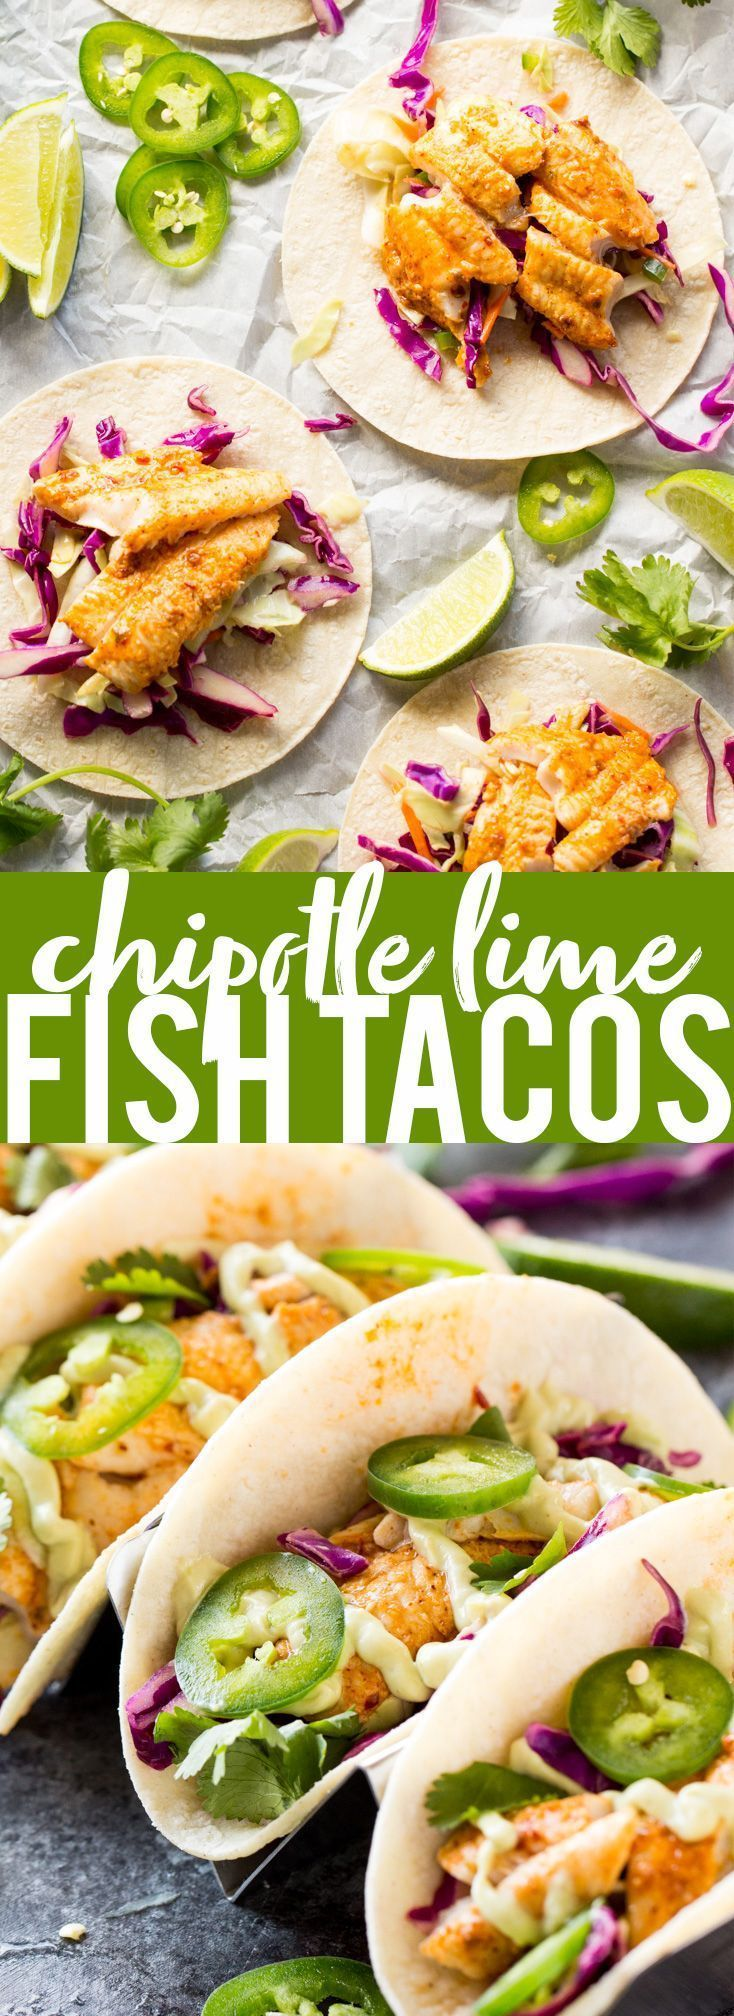 Chipotle Lime Fish Tacos with crunchy jalapeno lime slaw and creamy avocado crema are an easy and flavorful weeknight dinner! Taco Recipe | Baja Fish Tacos | Spicy Fish Tacos | Fish Recipes | Cinco De Mayo Recipes